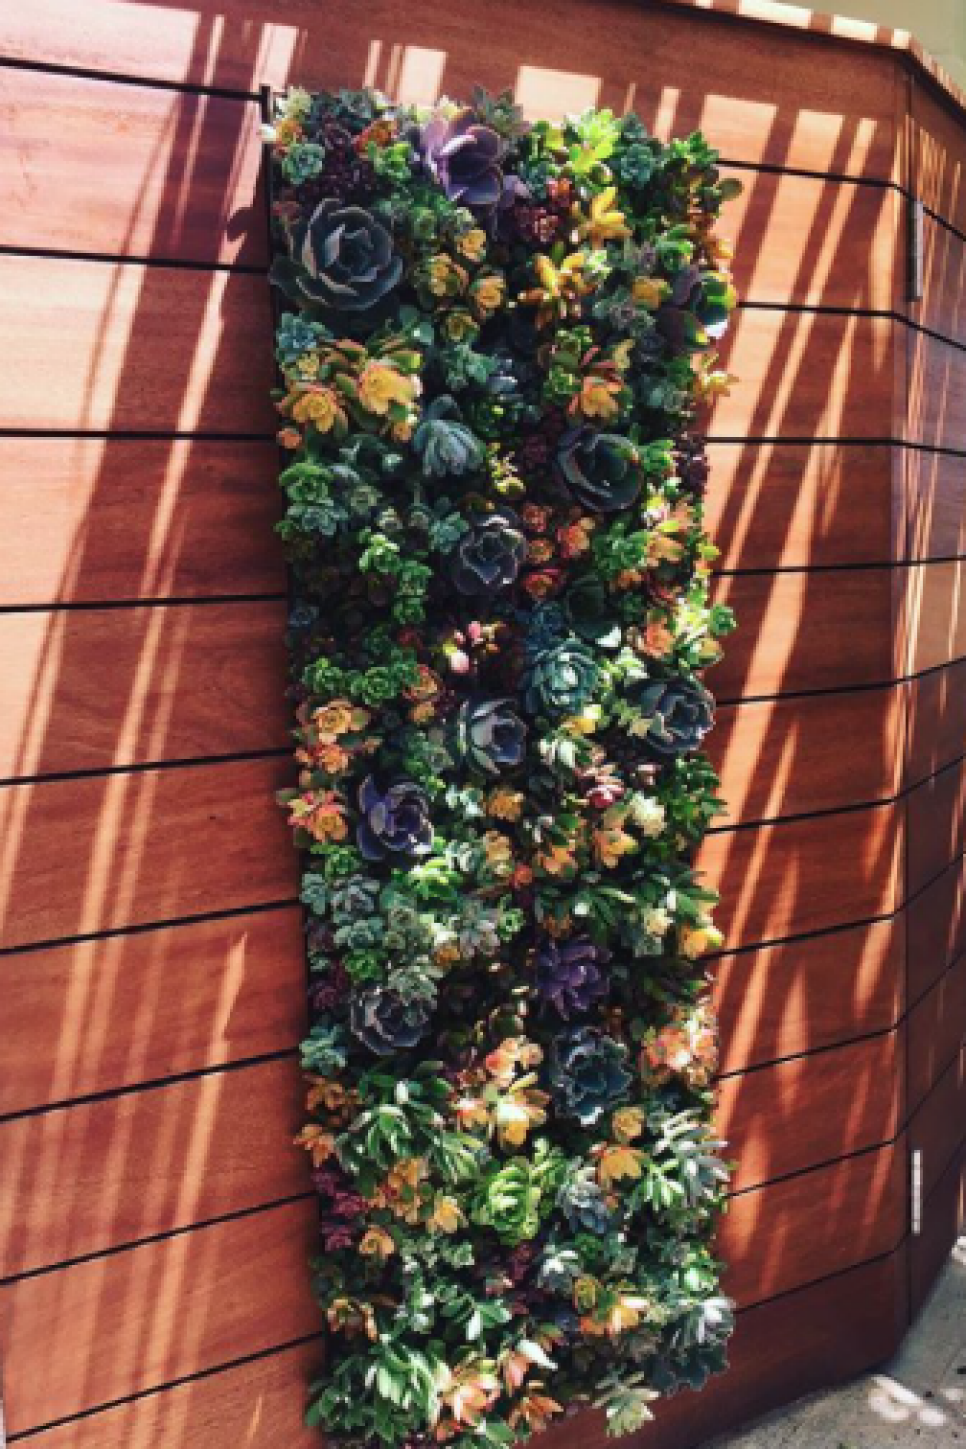 16 Stunning Succulent Gardens To Inspire Your Own Living Wall